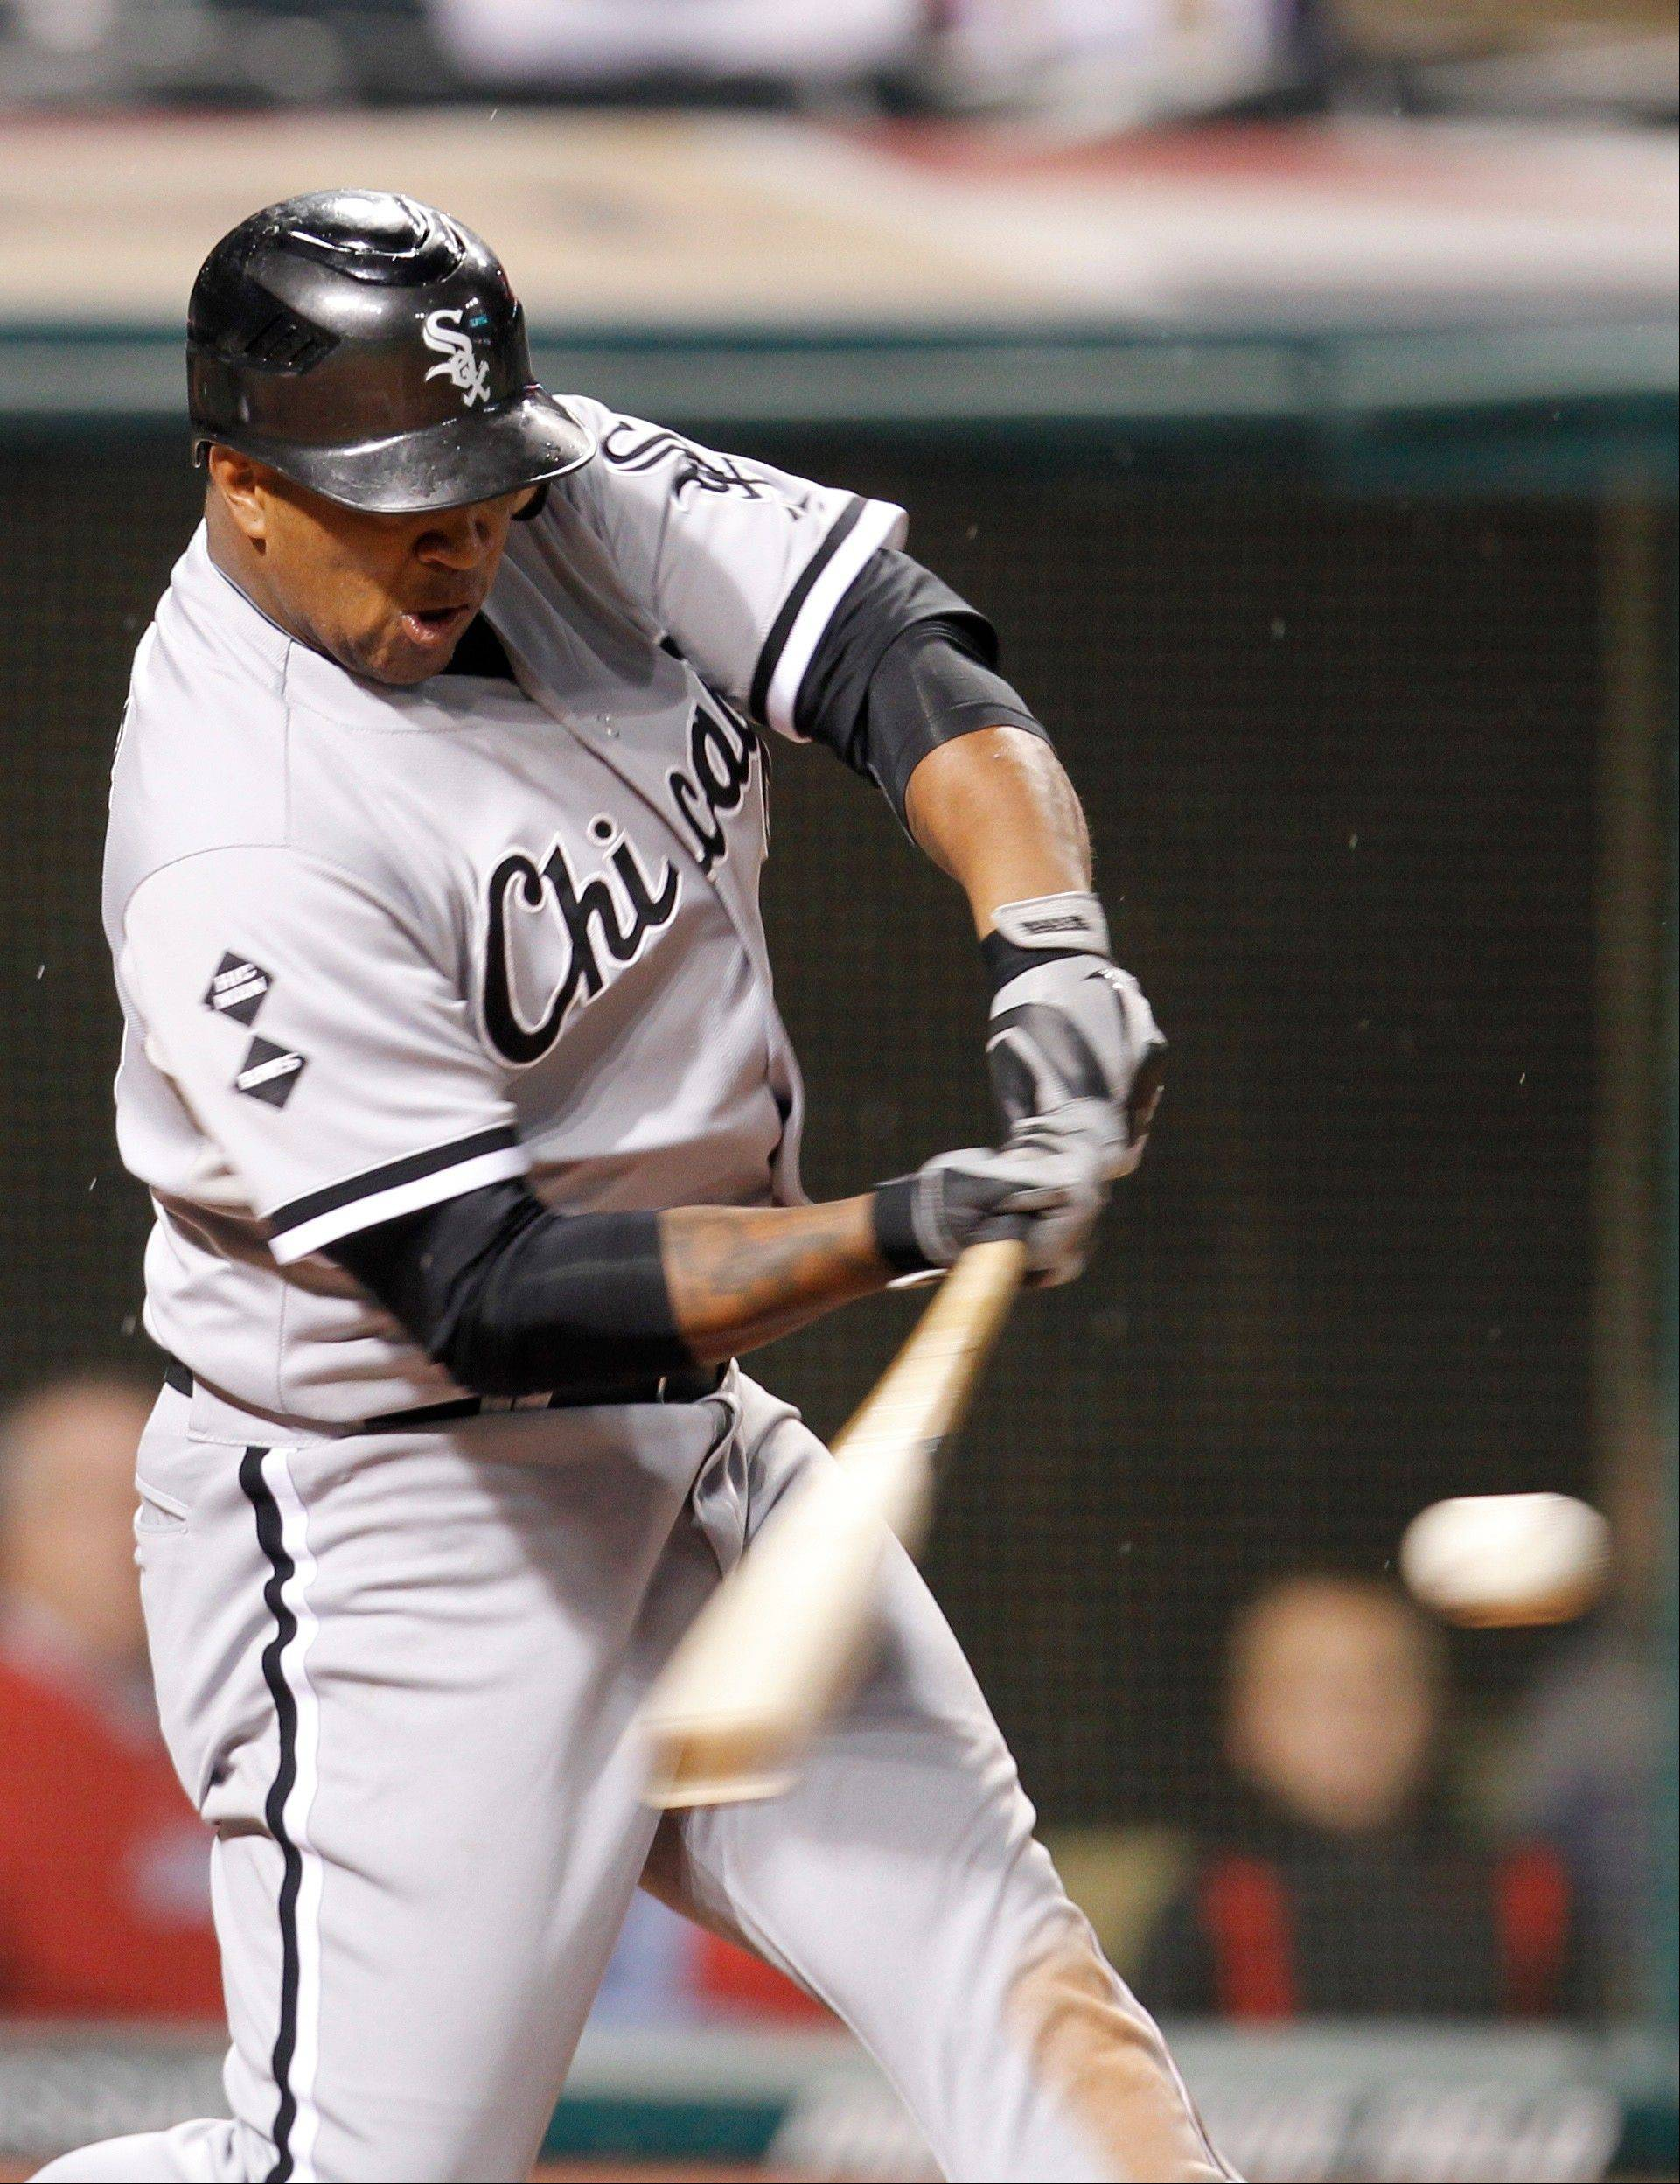 Dayan Viciedo hits a grand slam in the ninth inning of a baseball game against the Cleveland Indians, Monday, Oct. 1, 2012, in Cleveland. A.J. Pierzynski, Ray Olmedo and Jordan Danks scored. The White Sox won 11-0.